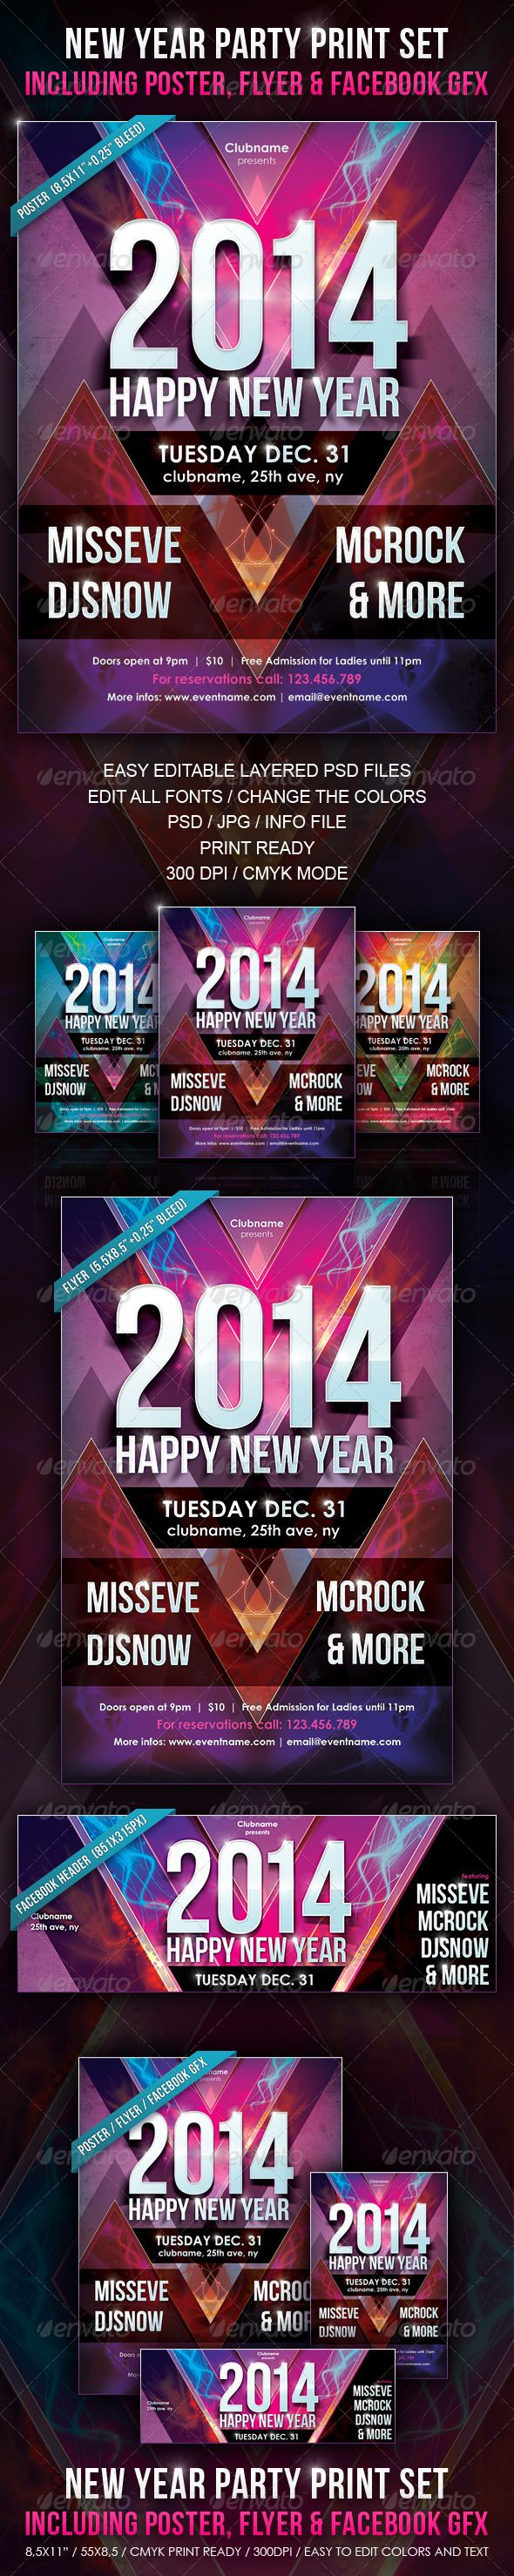 The 25 best facebook header template ideas on pinterest graphic new year party print set pronofoot35fo Choice Image